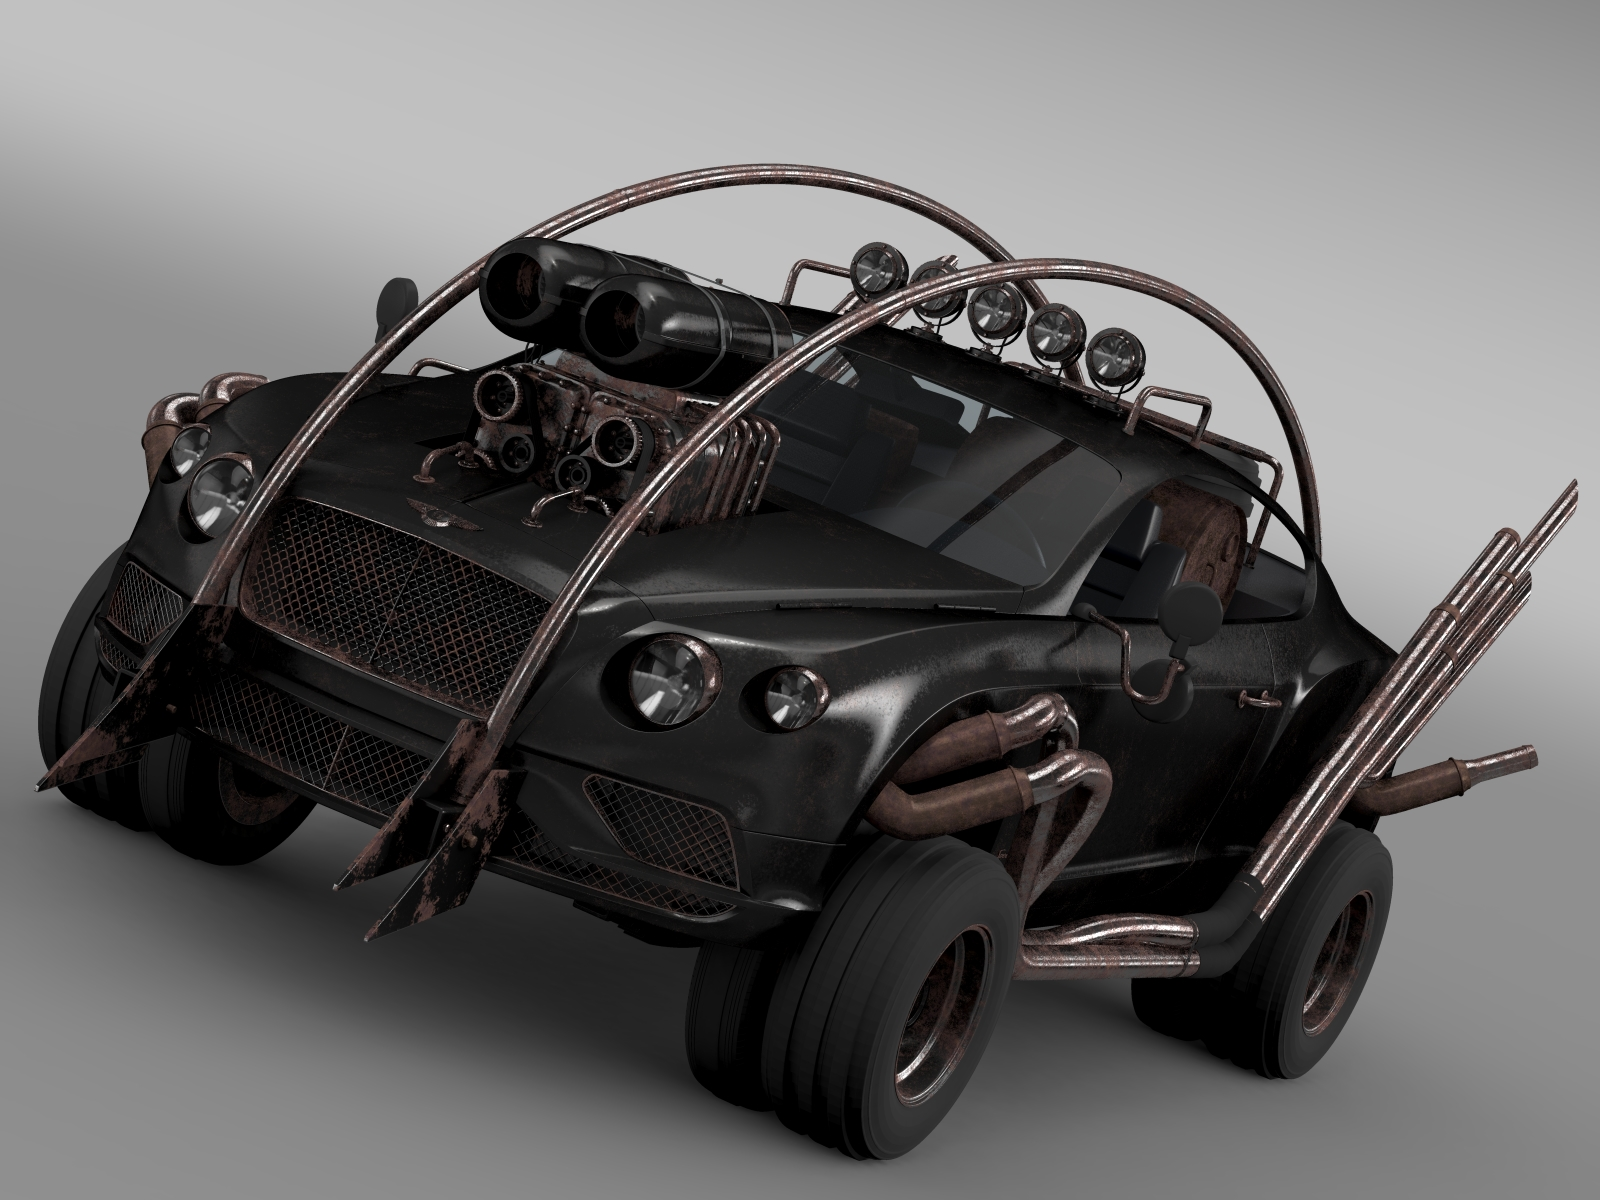 mad max grizzly bentley continental gt 2015 3d model 3ds max fbx c4d lwo ma mb hrc xsi obj 212614